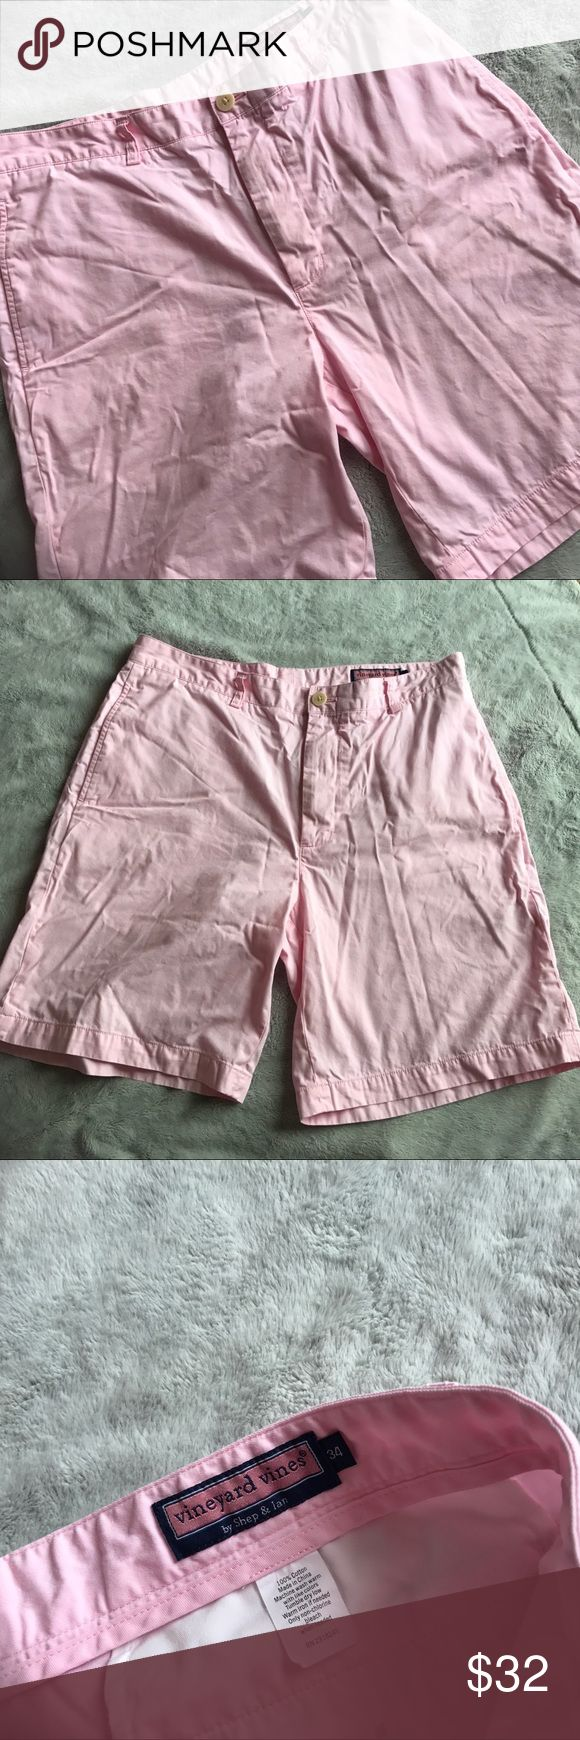 Vineyard Vines Men's Club Shorts Light Pink Good used condition. Club Shorts by Vineyard Vines in light pink. Traditional four-pocket, flat front design. Whale logo patch above back right pocket. 100% cotton twill. Note: small spot on front left leg & (mud/grass) marks on back, can likely be removed by cleaning. Slightly wrinkled from storage. Size 34, see photos for measurements. Vineyard Vines Shorts Flat Front